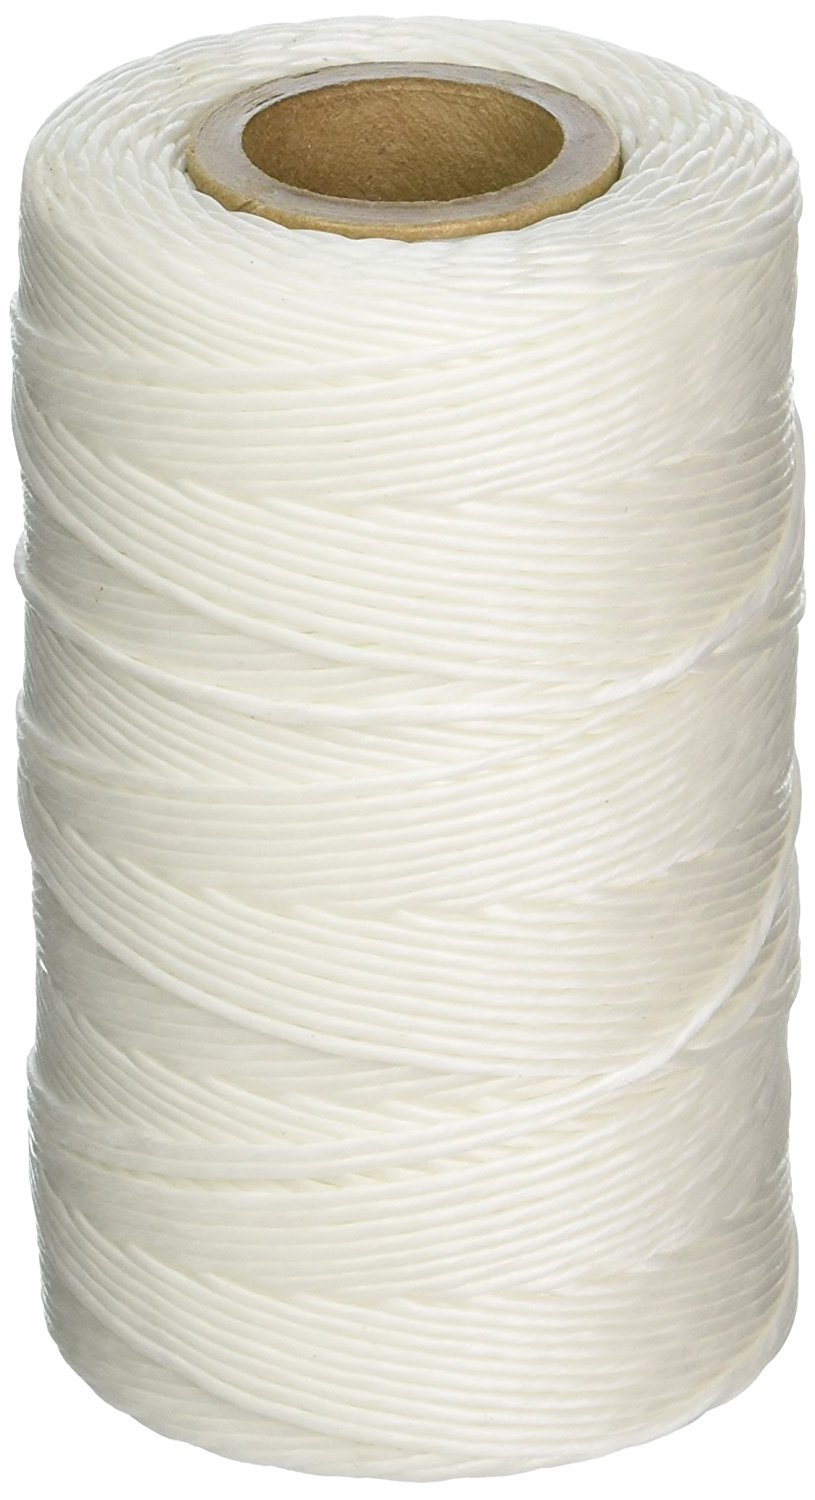 Weno Networks CASE OF 60 WAXED LACING CORD TWINE / CABLE TIE DOWN, POLYESTER, 9-PLY, 187 YARDS, 562 FEET, TENSILE STRENGTH: 150 LBS MADE IN THE USA